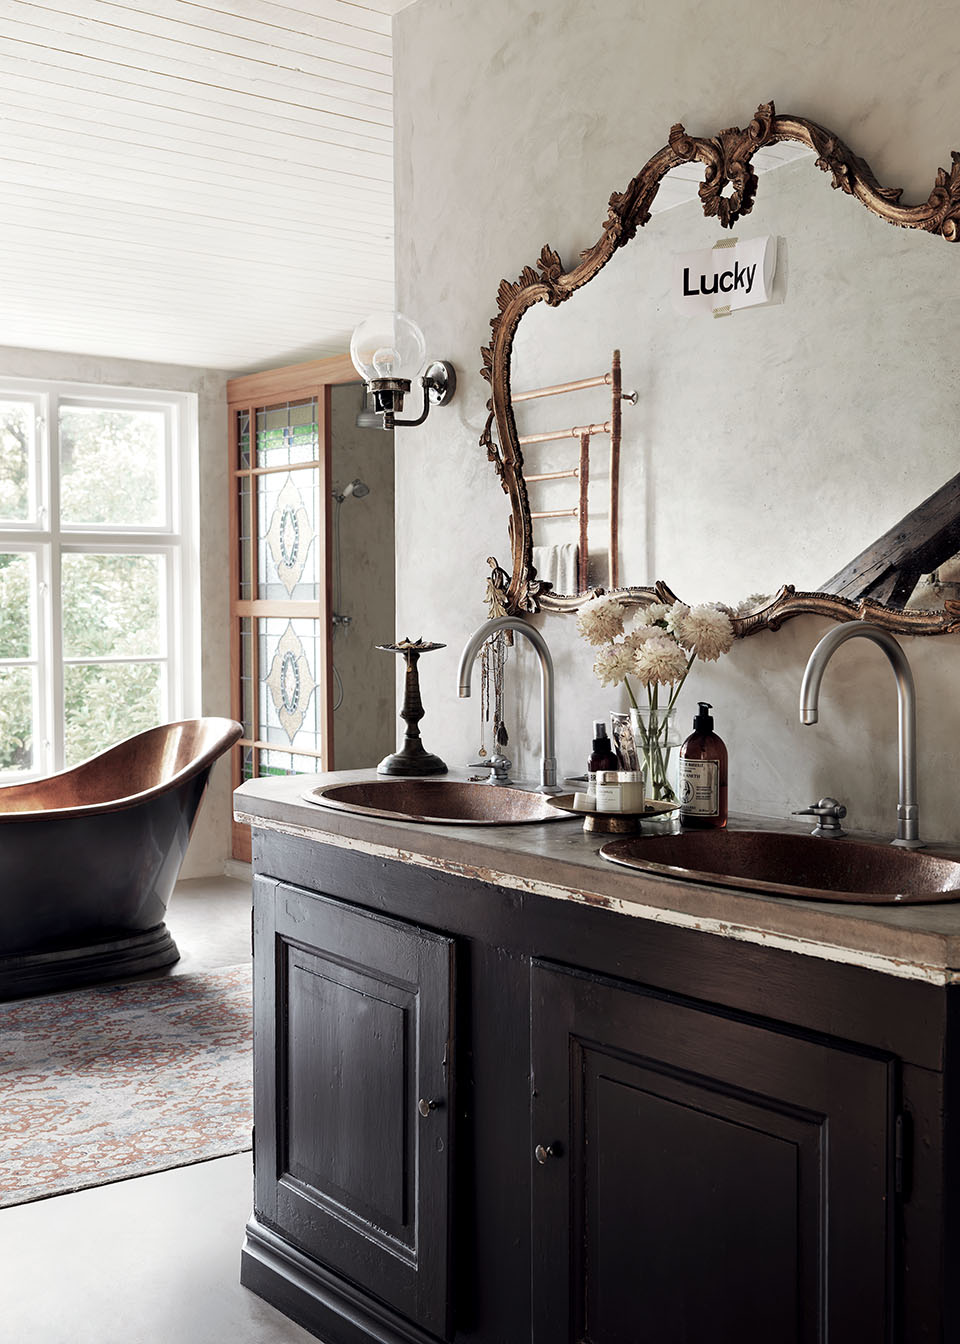 bathroom double sink rustic vanity inspiration farmhouse decor copper bathtub gilded gilt gold mirror